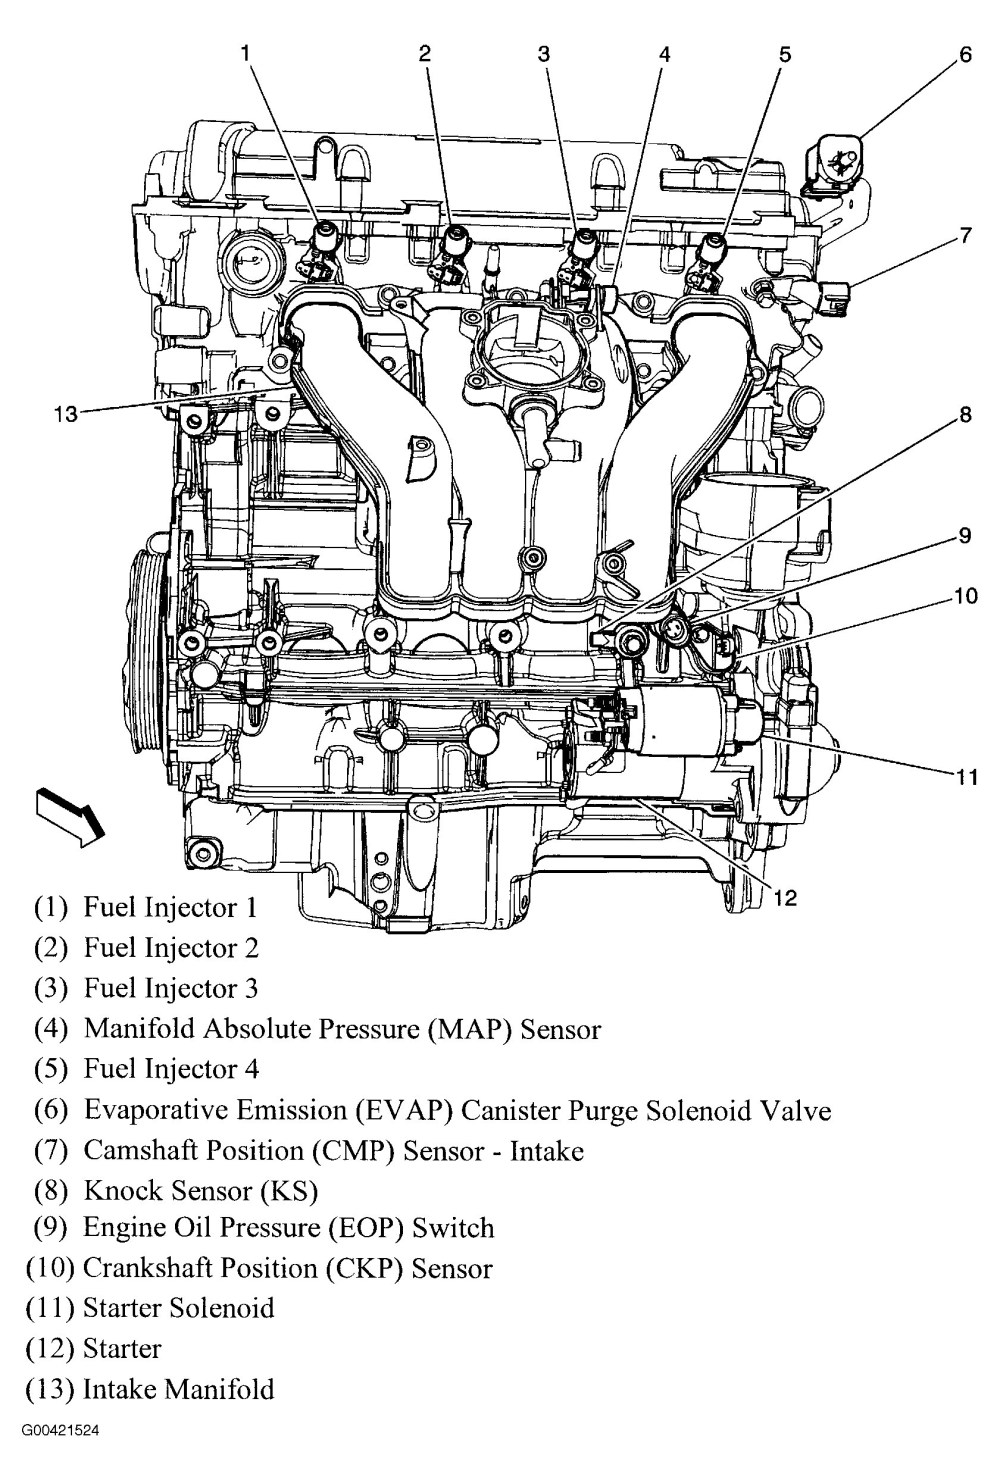 medium resolution of custom 2000 buick century engine diagram wiring diagram datasource 02 buick 3 1 engine diagram wiring